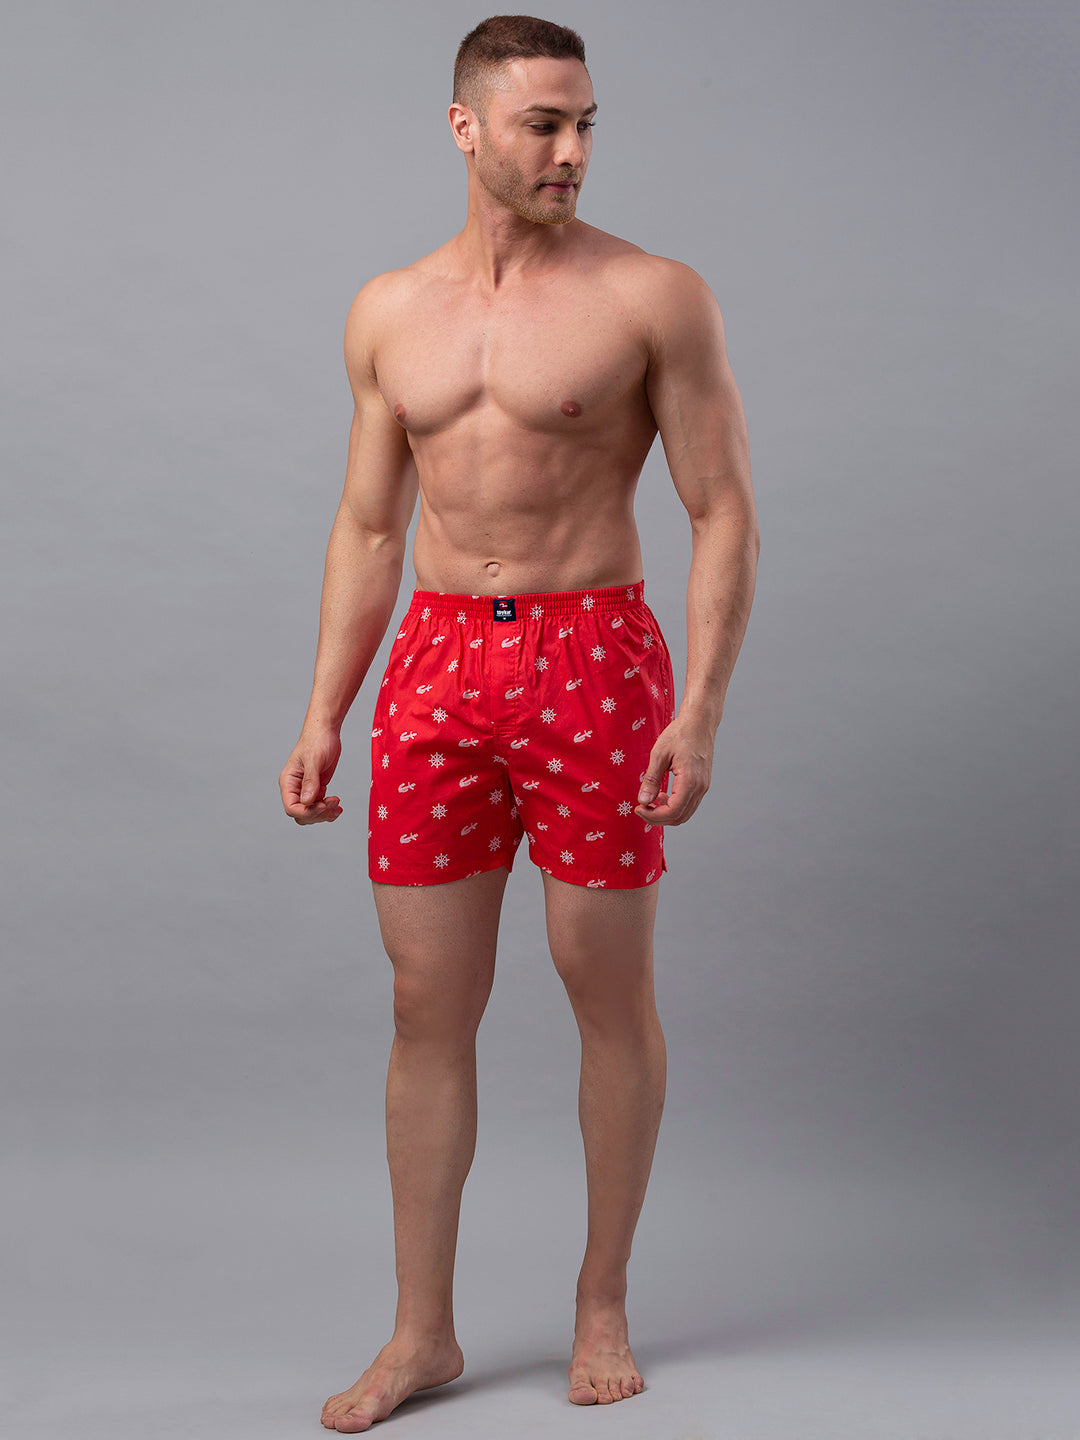 Underjeans Red Cotton Boxers - Pack of 2